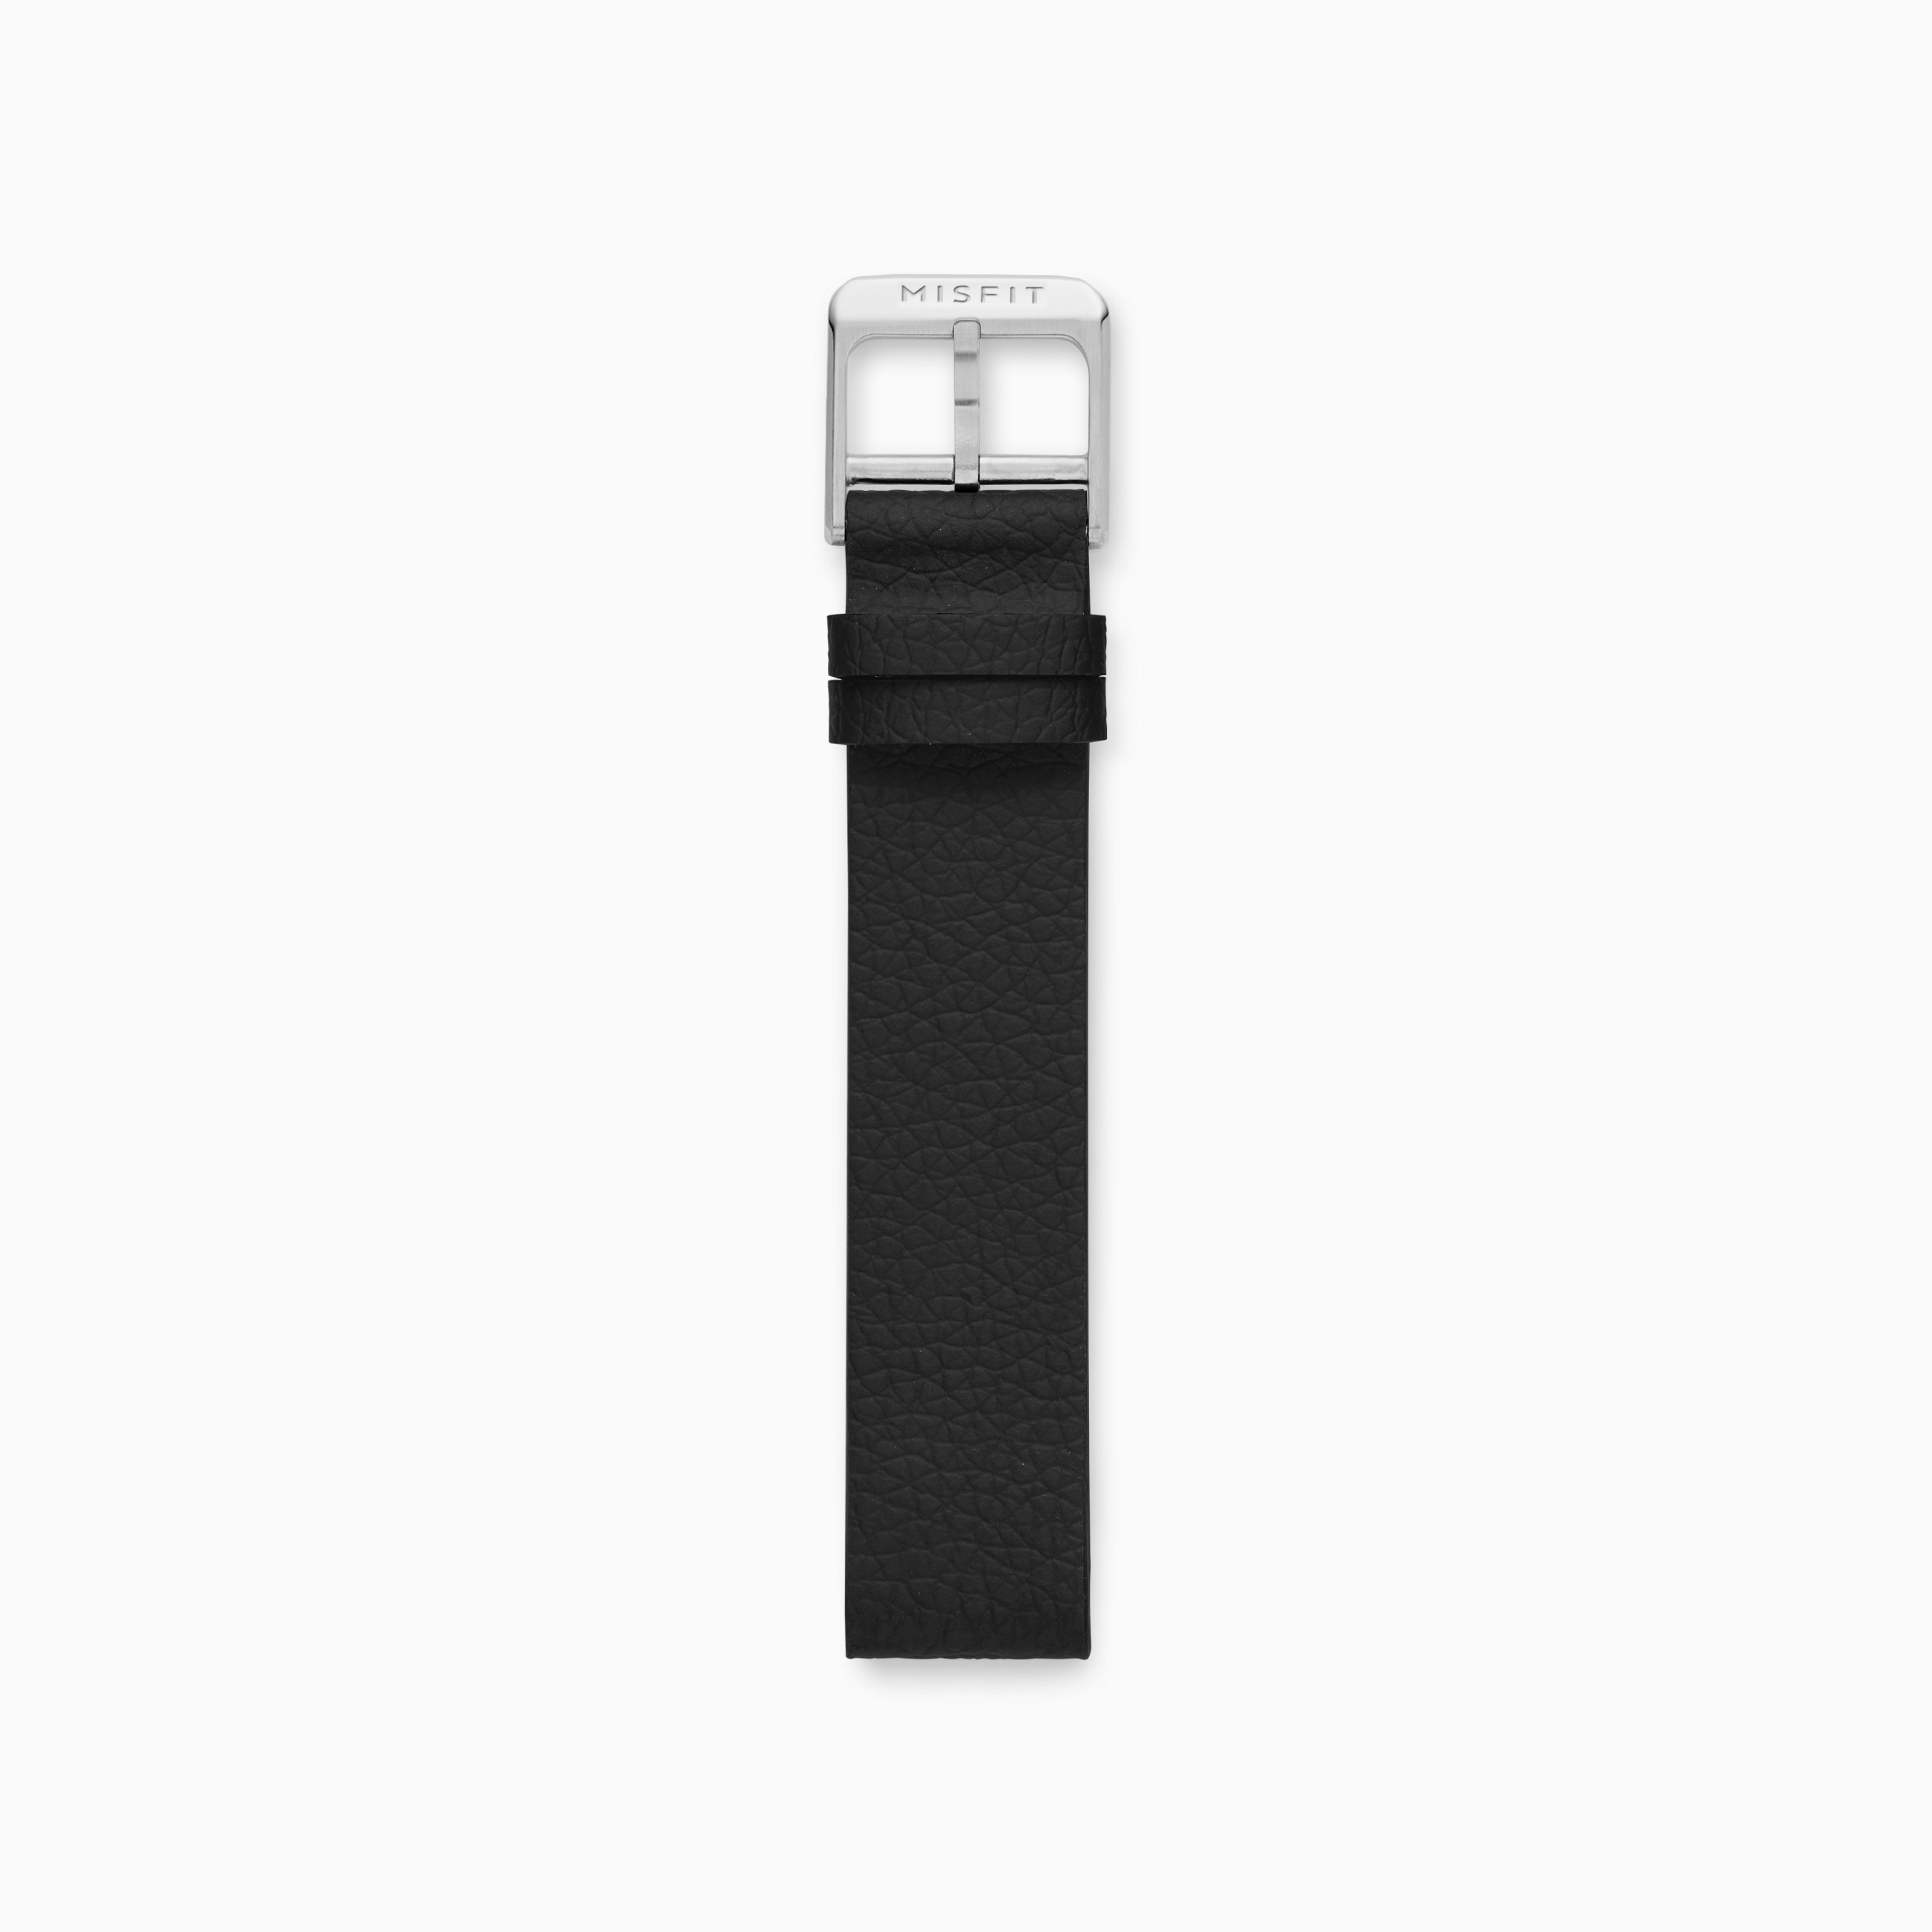 16mm Misfit Smartwatch Silicone Leather Strap